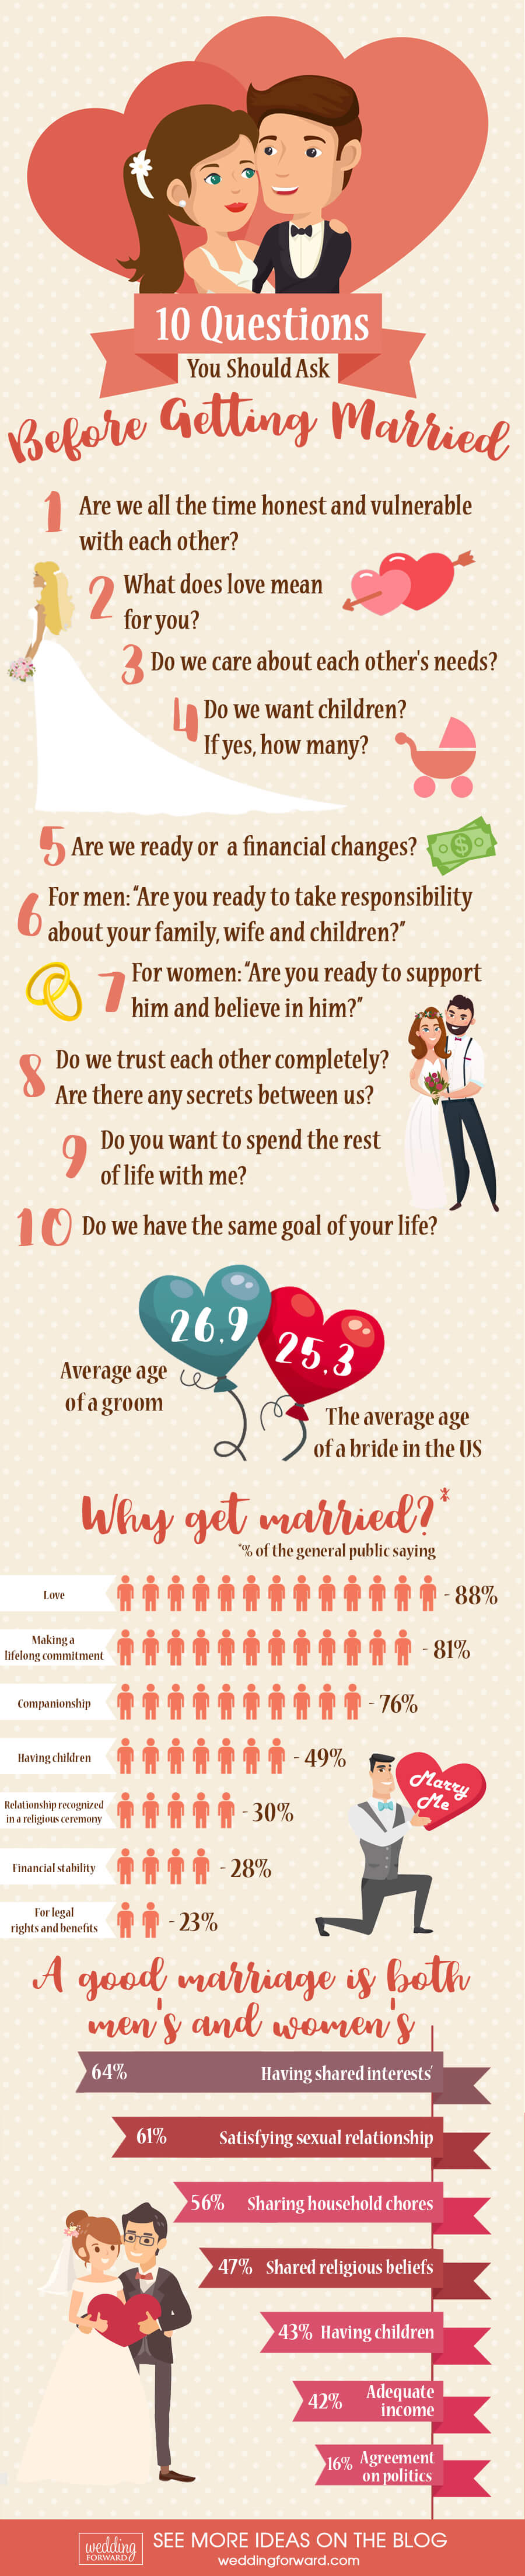 10-Questions-You-Should-Ask-Before-Getting-Married-infographic-plaza